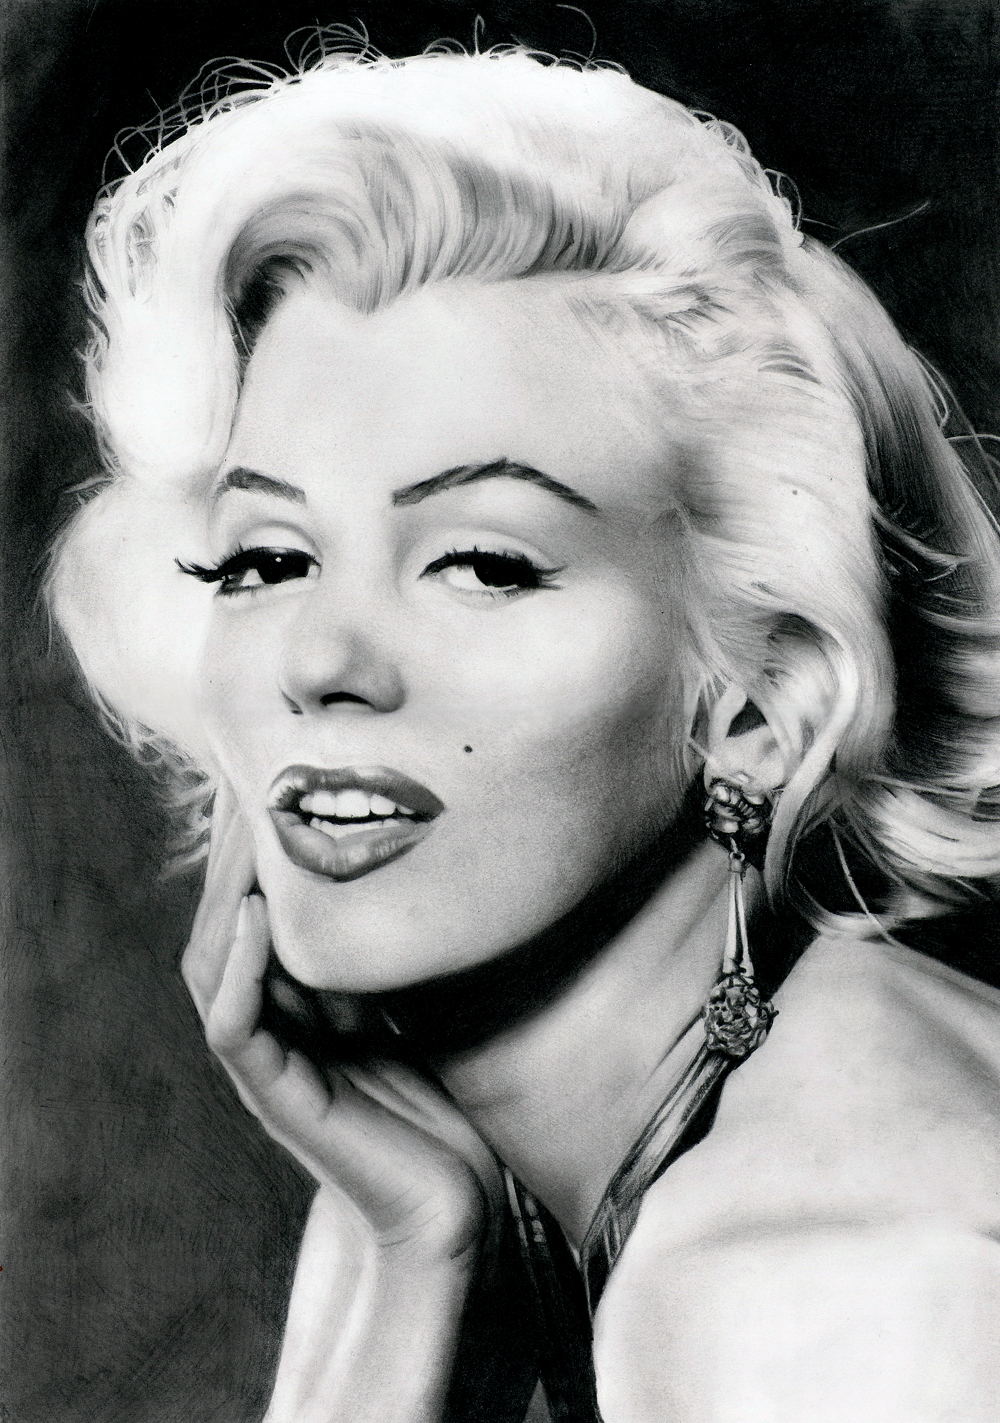 Beautiful B&W portraits of Marilyn Monroe | vintage everyday